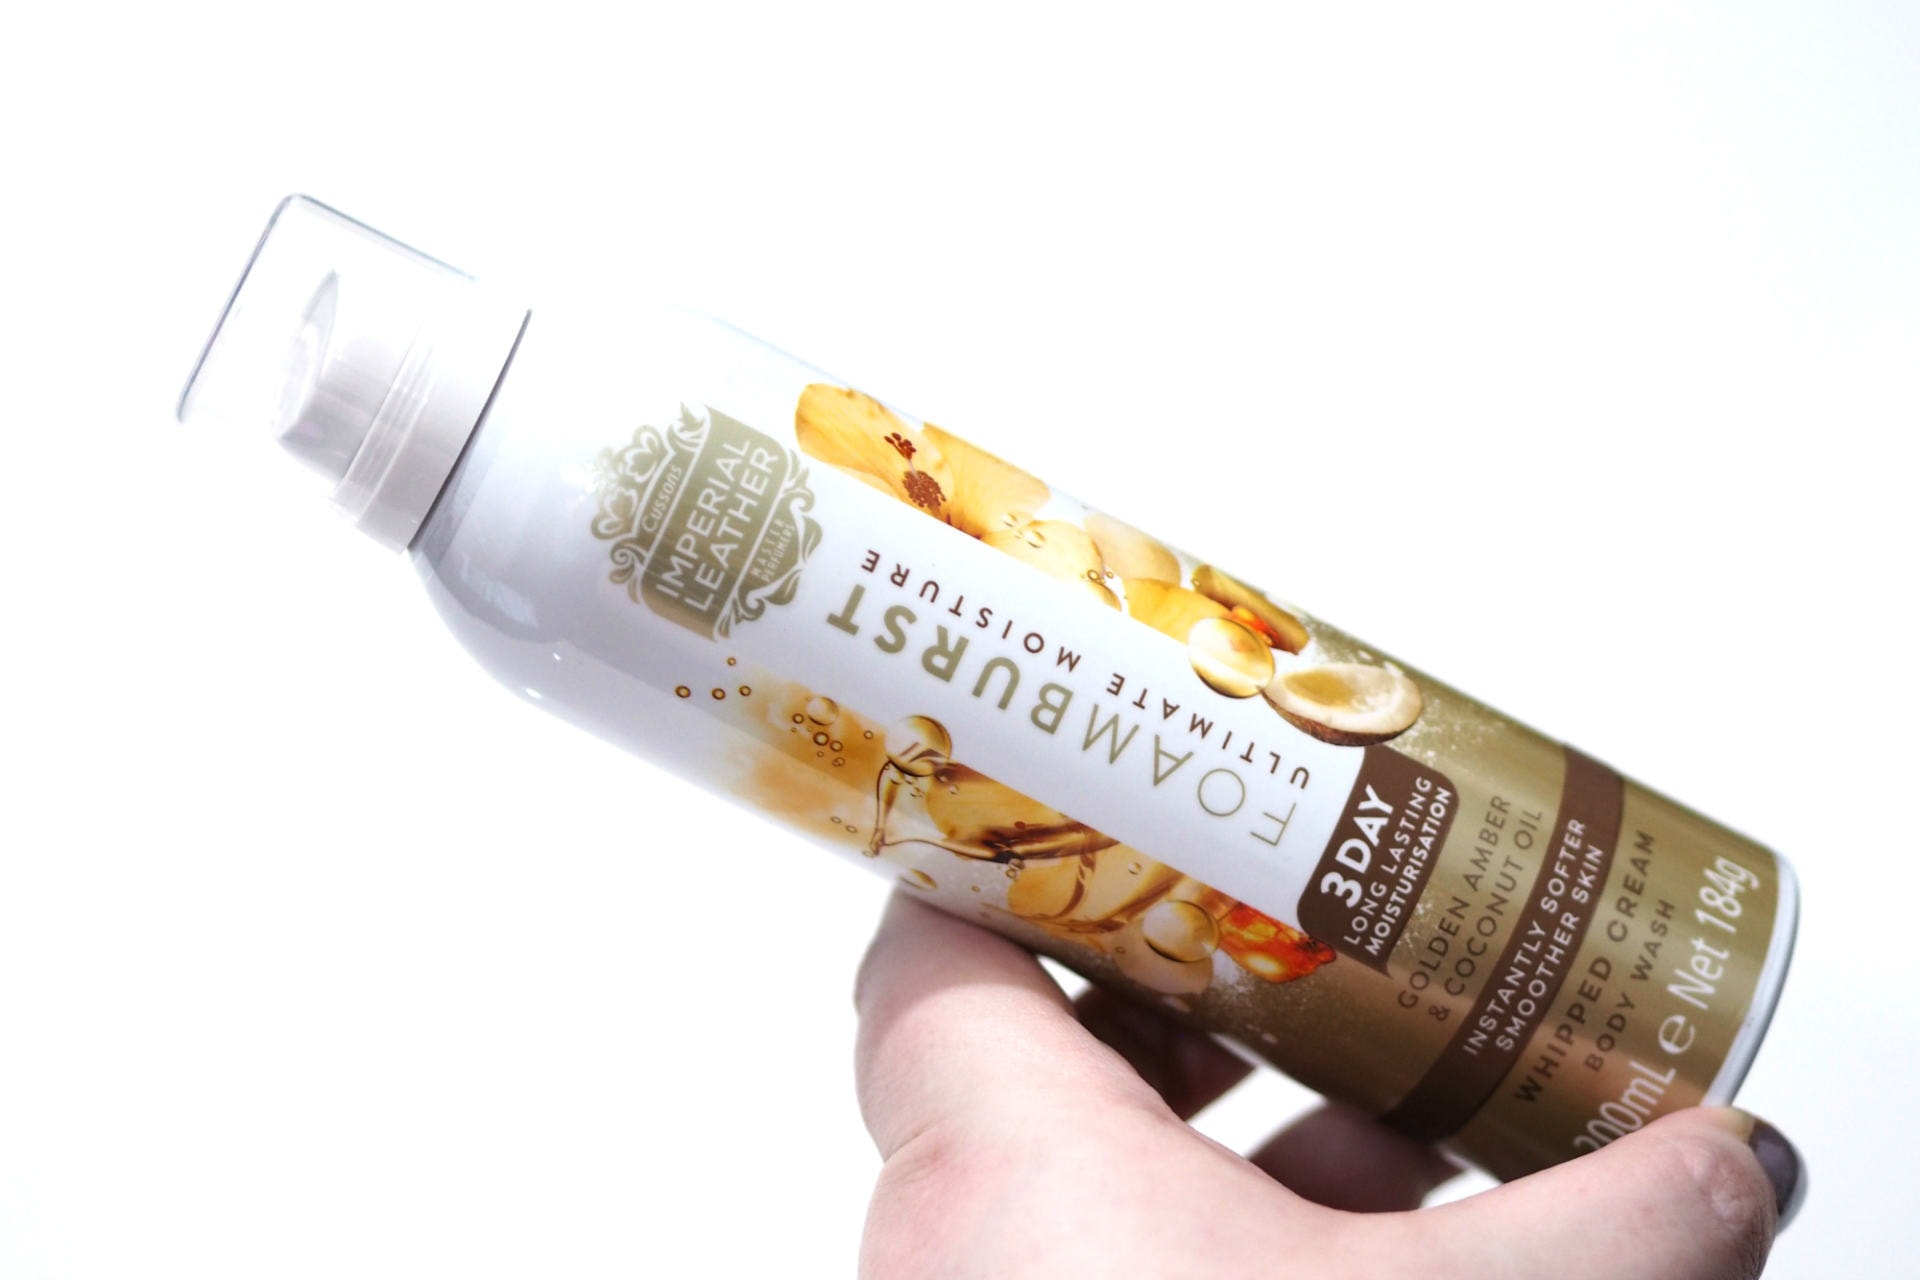 Imperial Leather Foamburst Ultimate Moisture Whipped Cream Body Wash